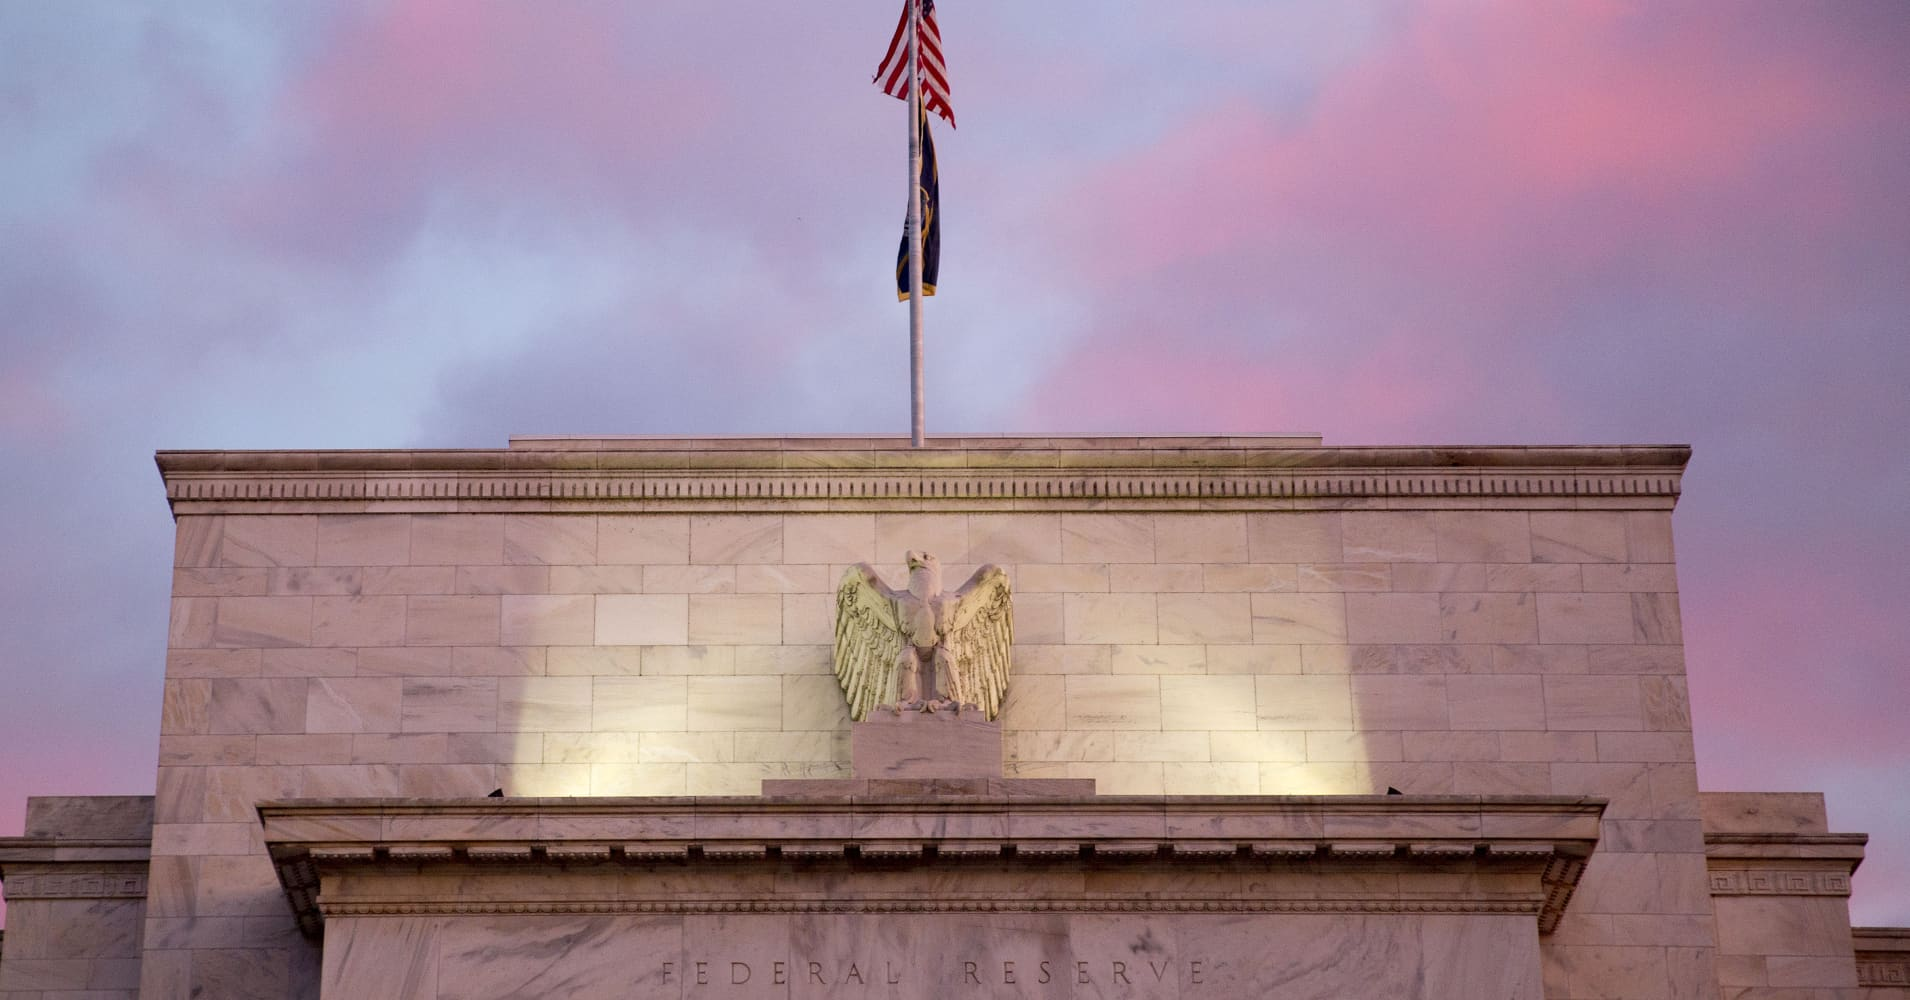 Fed's Beige Book: US economy, inflation growing at modest-to-moderate pace